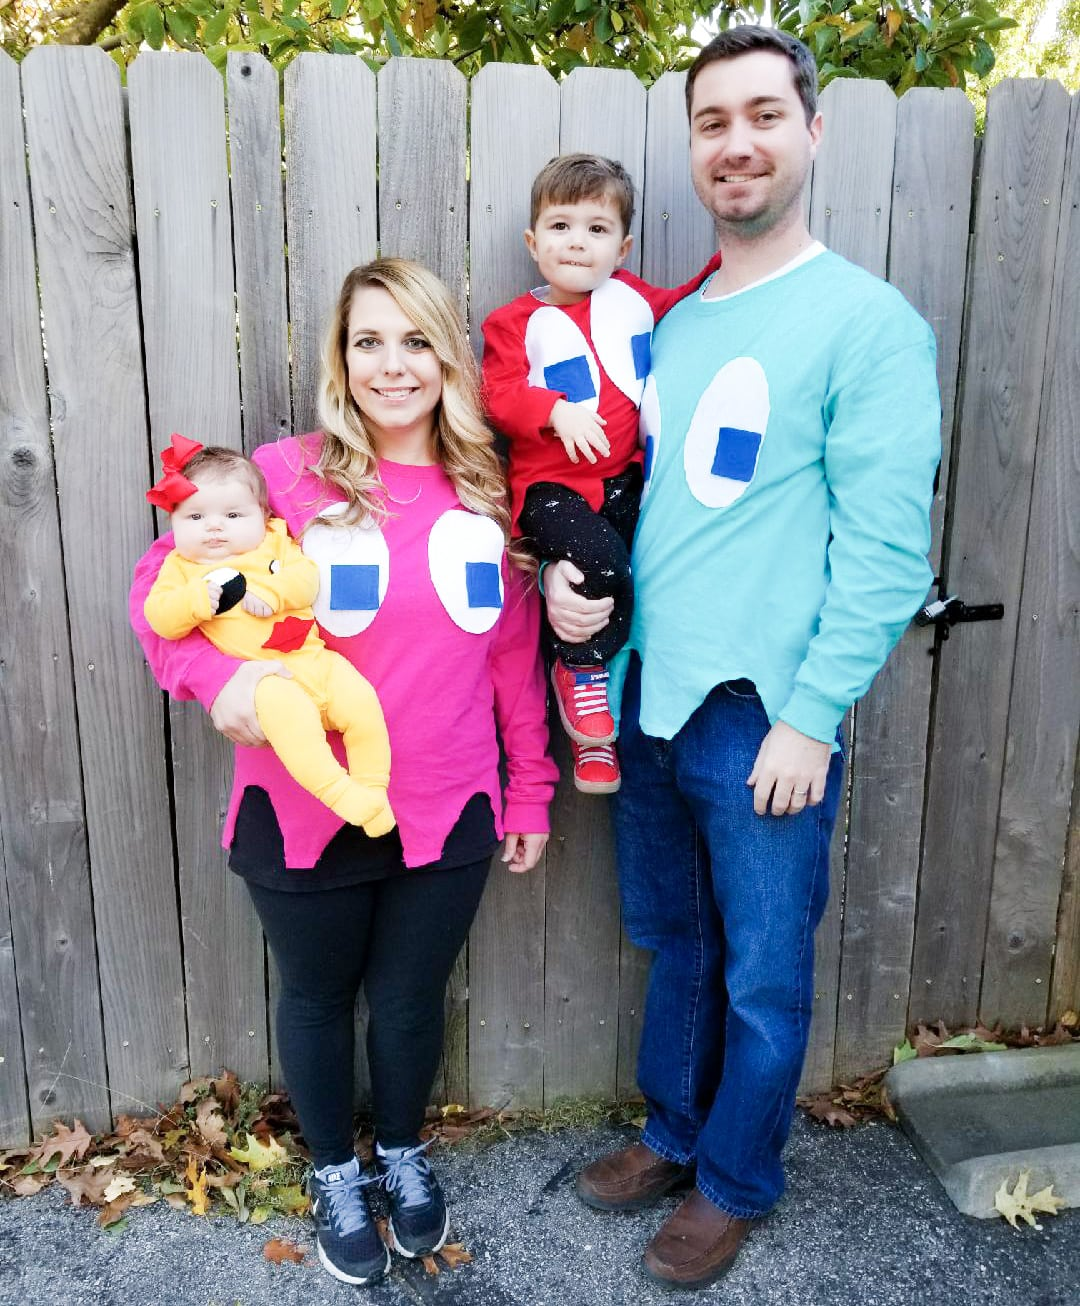 Pacman Family Halloween Costumes - Looking for cute, cheap, and easy Halloween costumes or unique last-minute, DIY Halloween costume ideas? Check out these 40 Creative Halloween Costume Ideas for women, moms, cute couples, small and large families, and best friends! You're sure to win the best Halloween costumes with these picks. #halloween #halloweencostumes #halloweencostumeideas #easycostumes